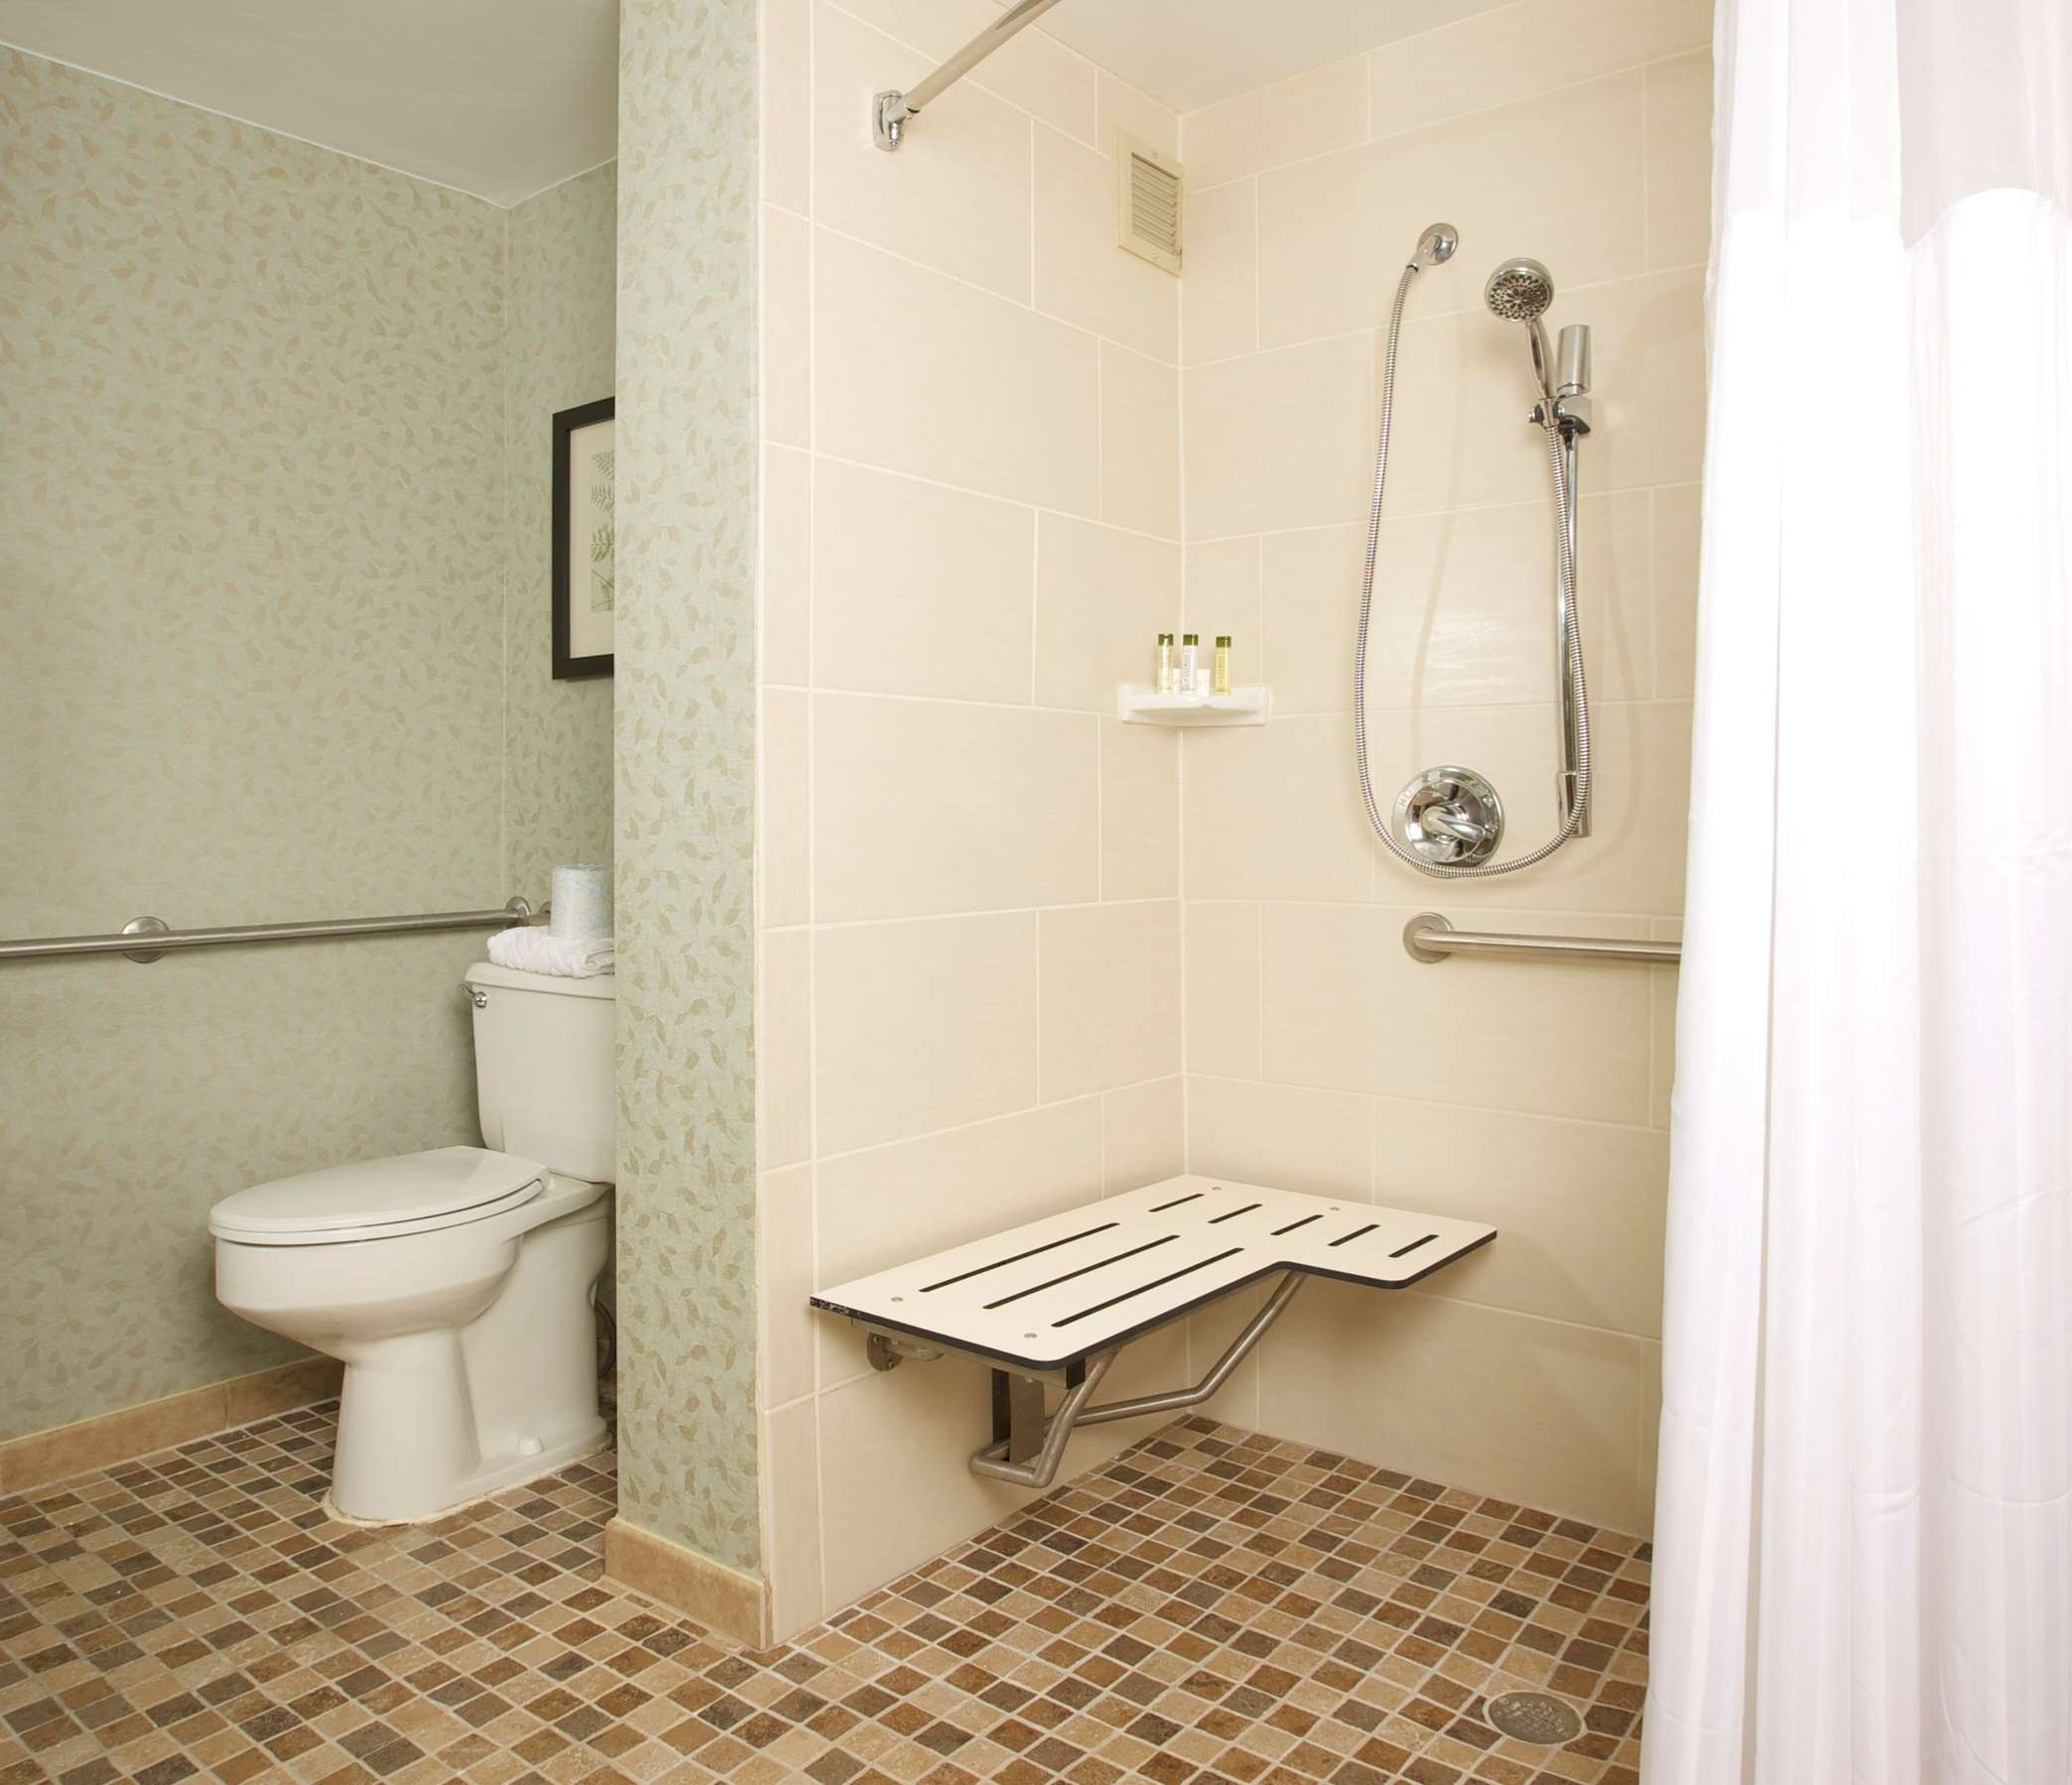 DoubleTree Suites by Hilton Hotel Raleigh - Durham image 13